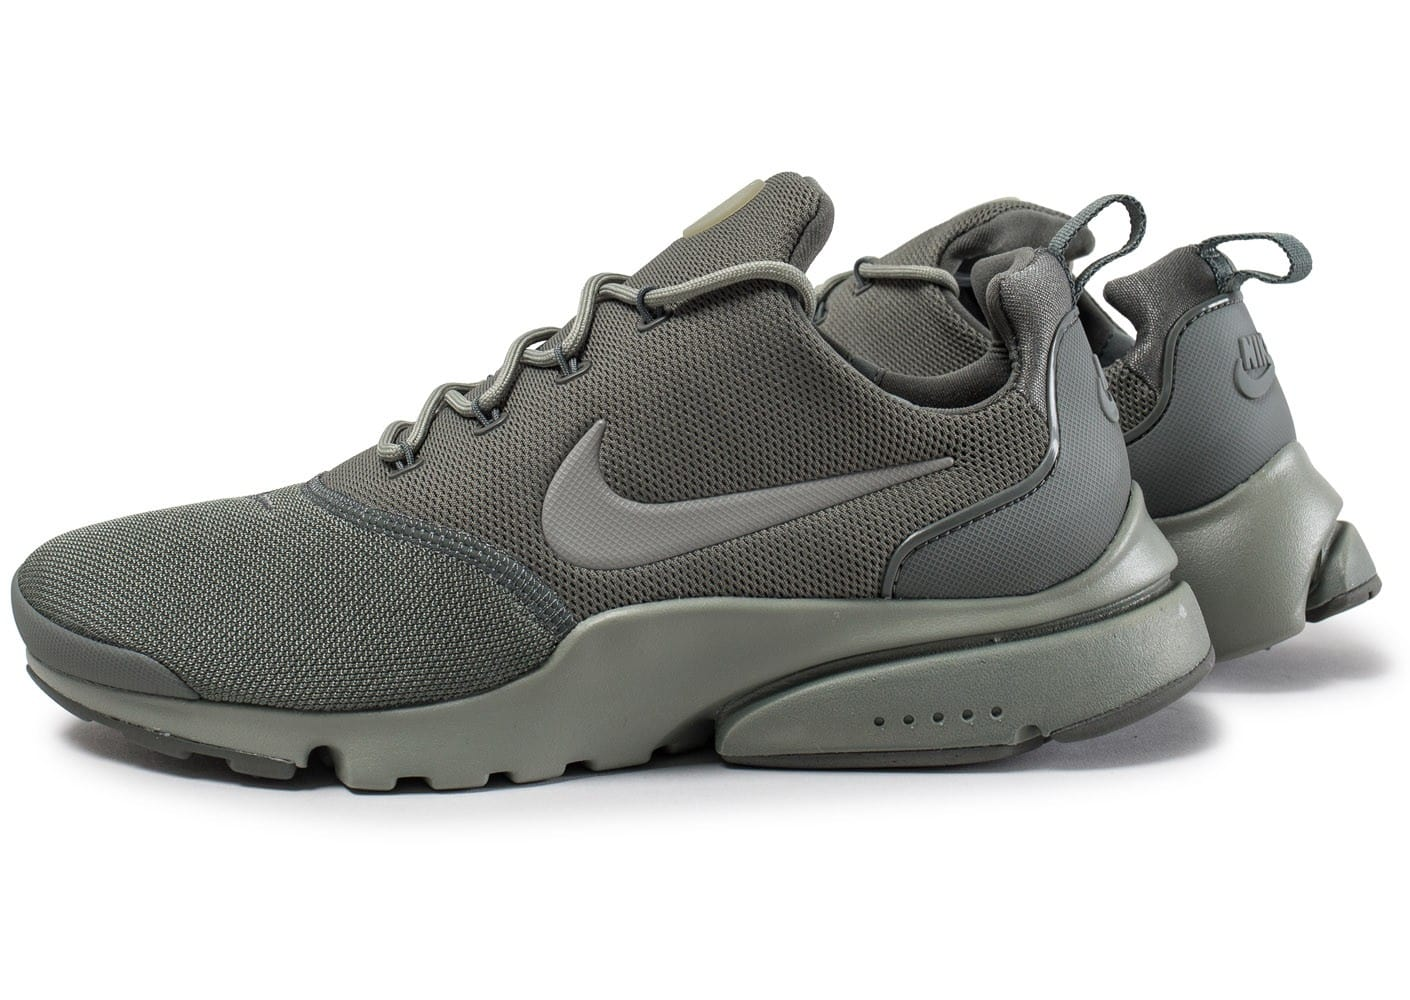 nike presto fly gris kaki chaussures homme chausport. Black Bedroom Furniture Sets. Home Design Ideas